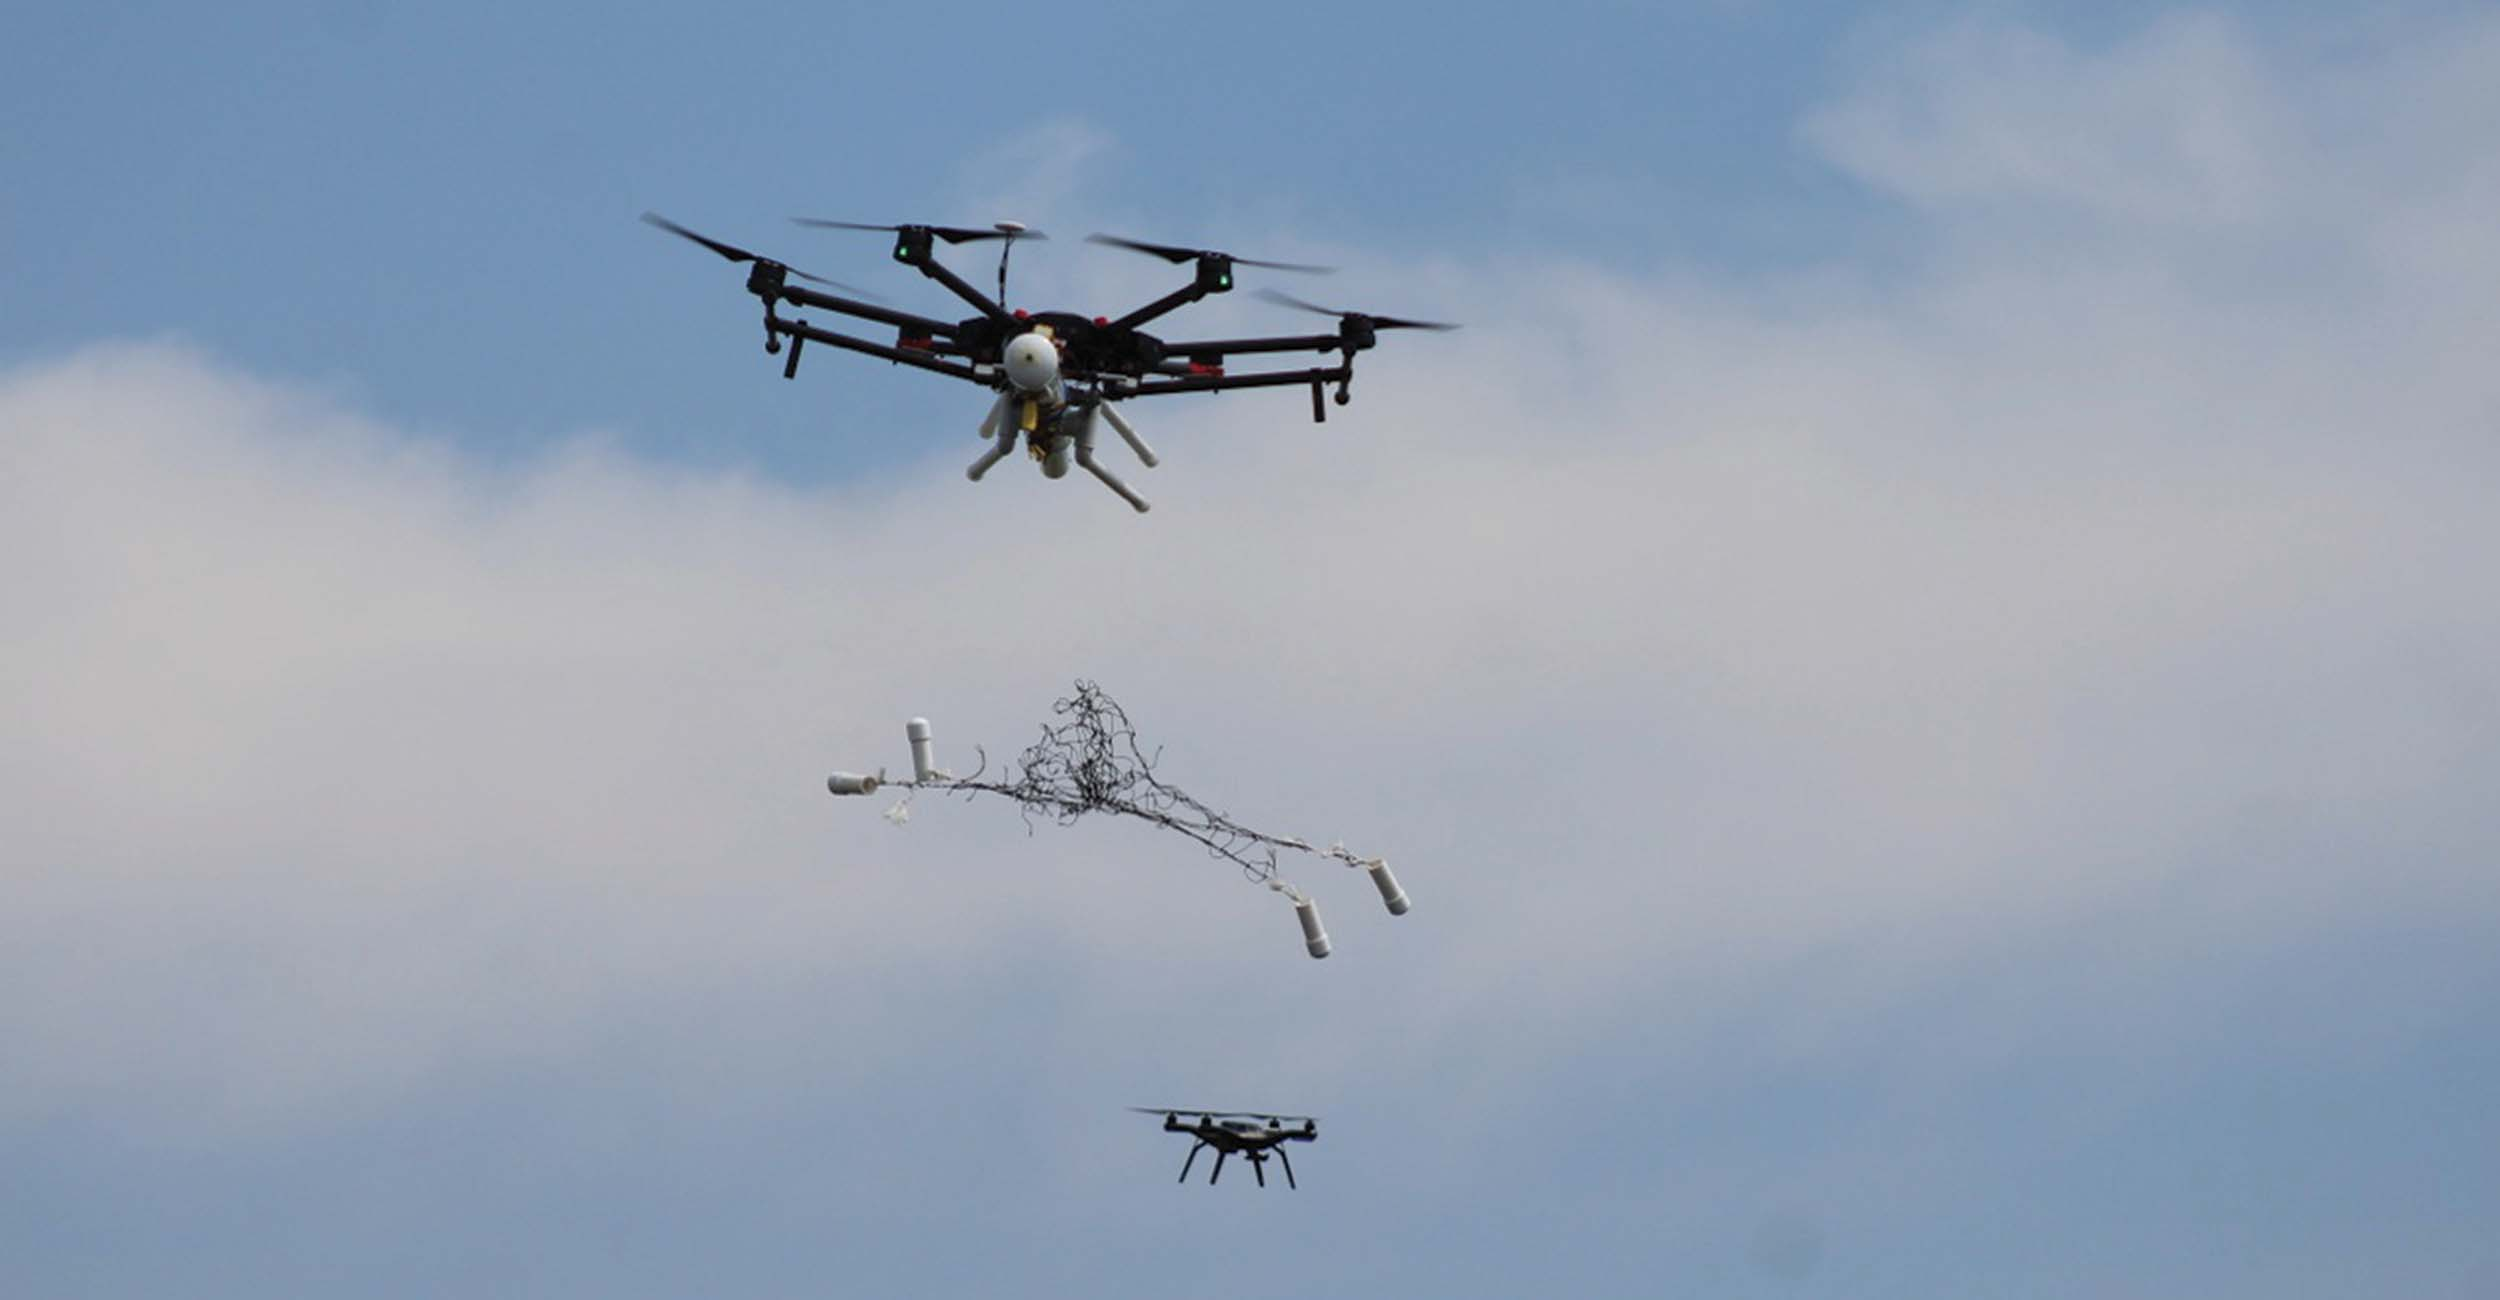 Drone throwing a net at another drone